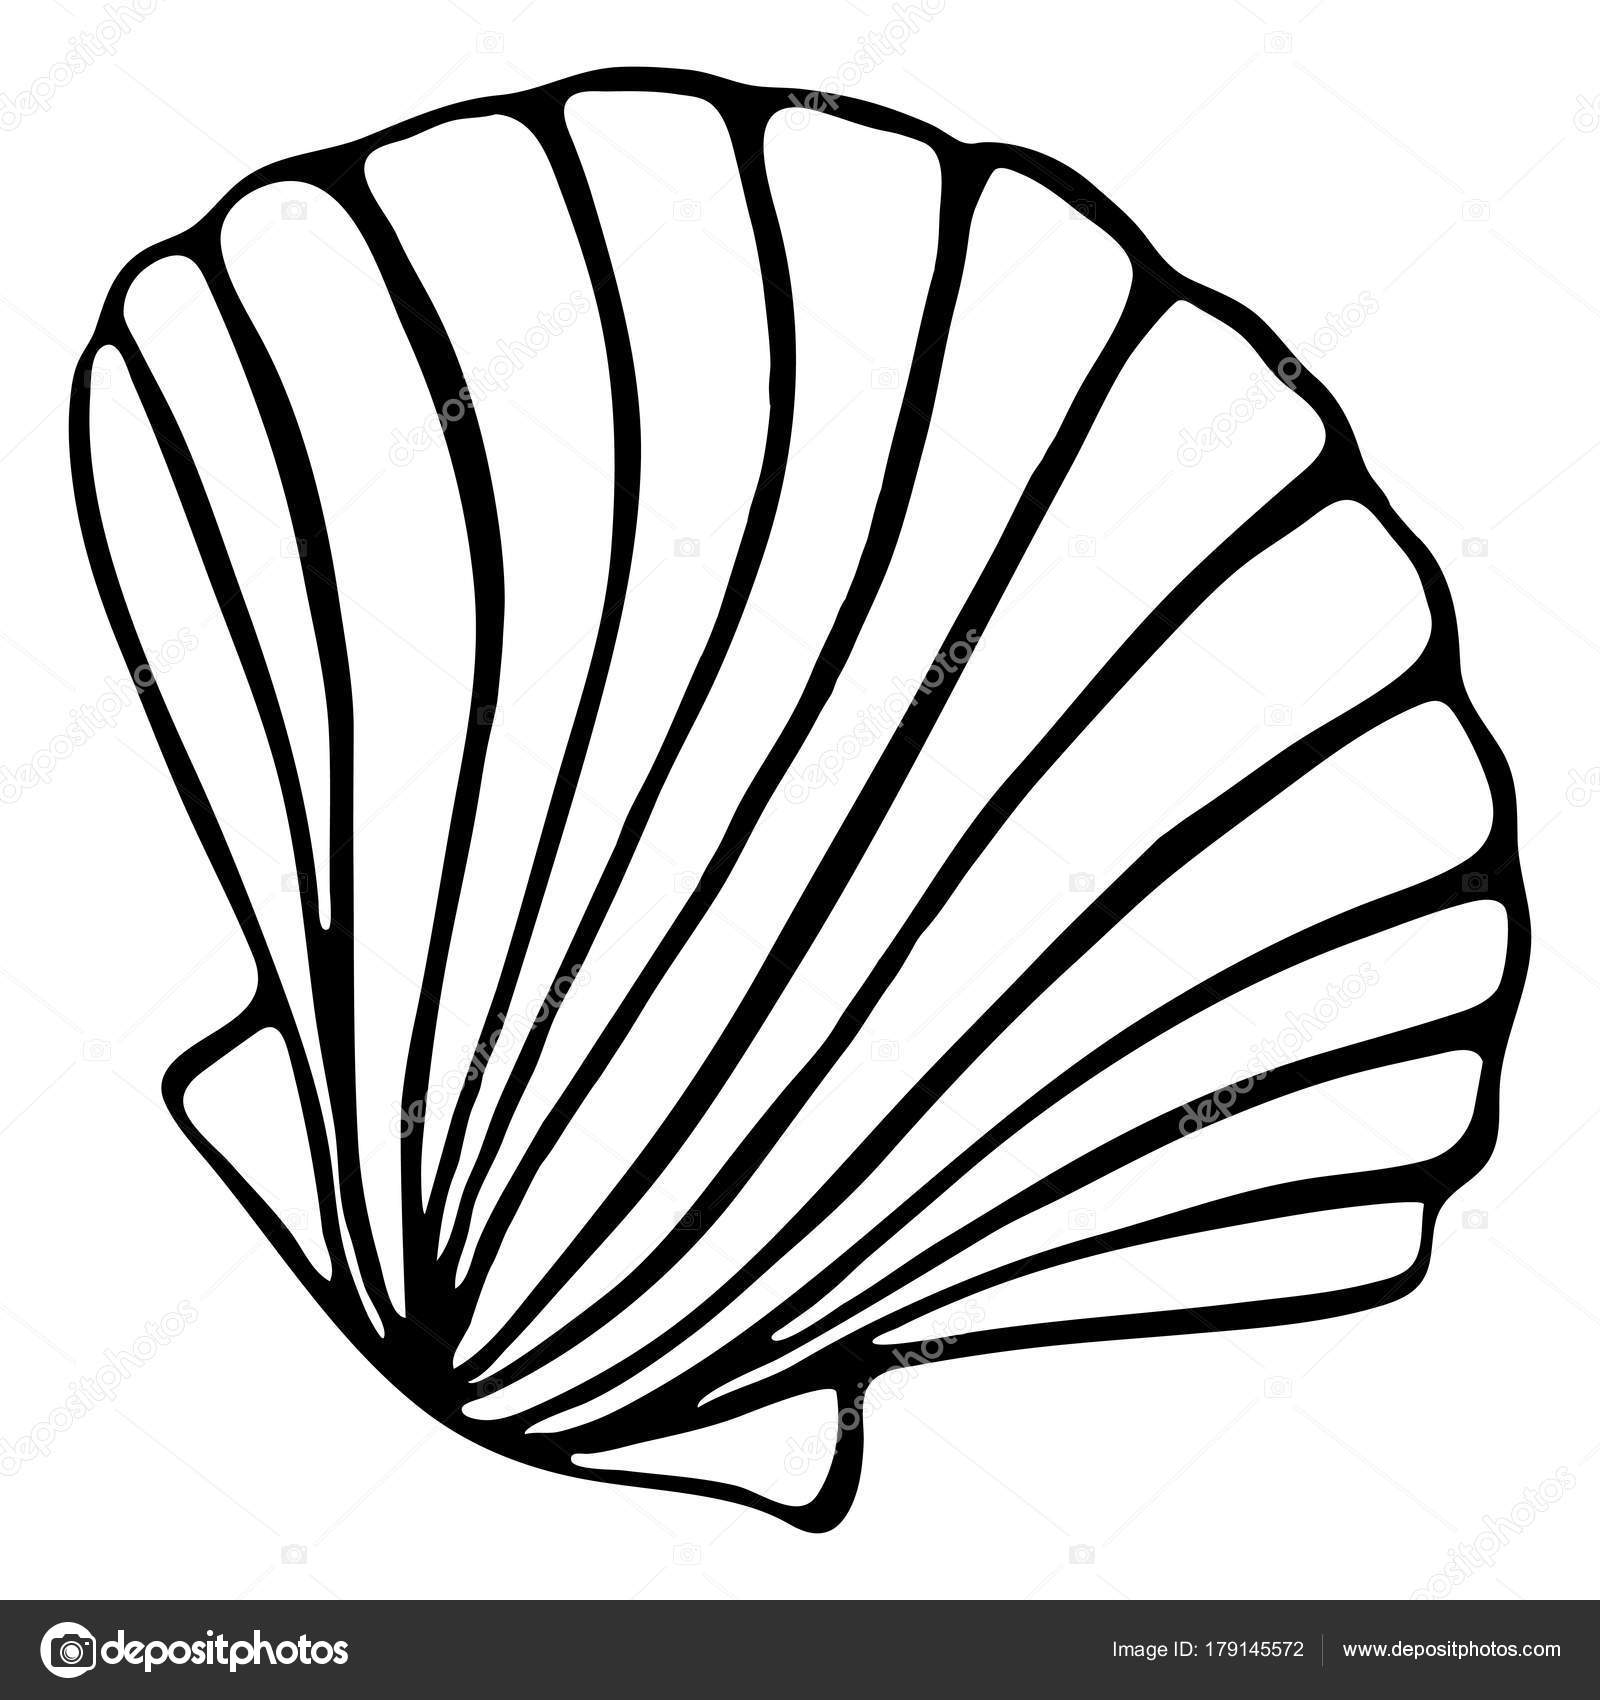 Shell Drawing At Getdrawings